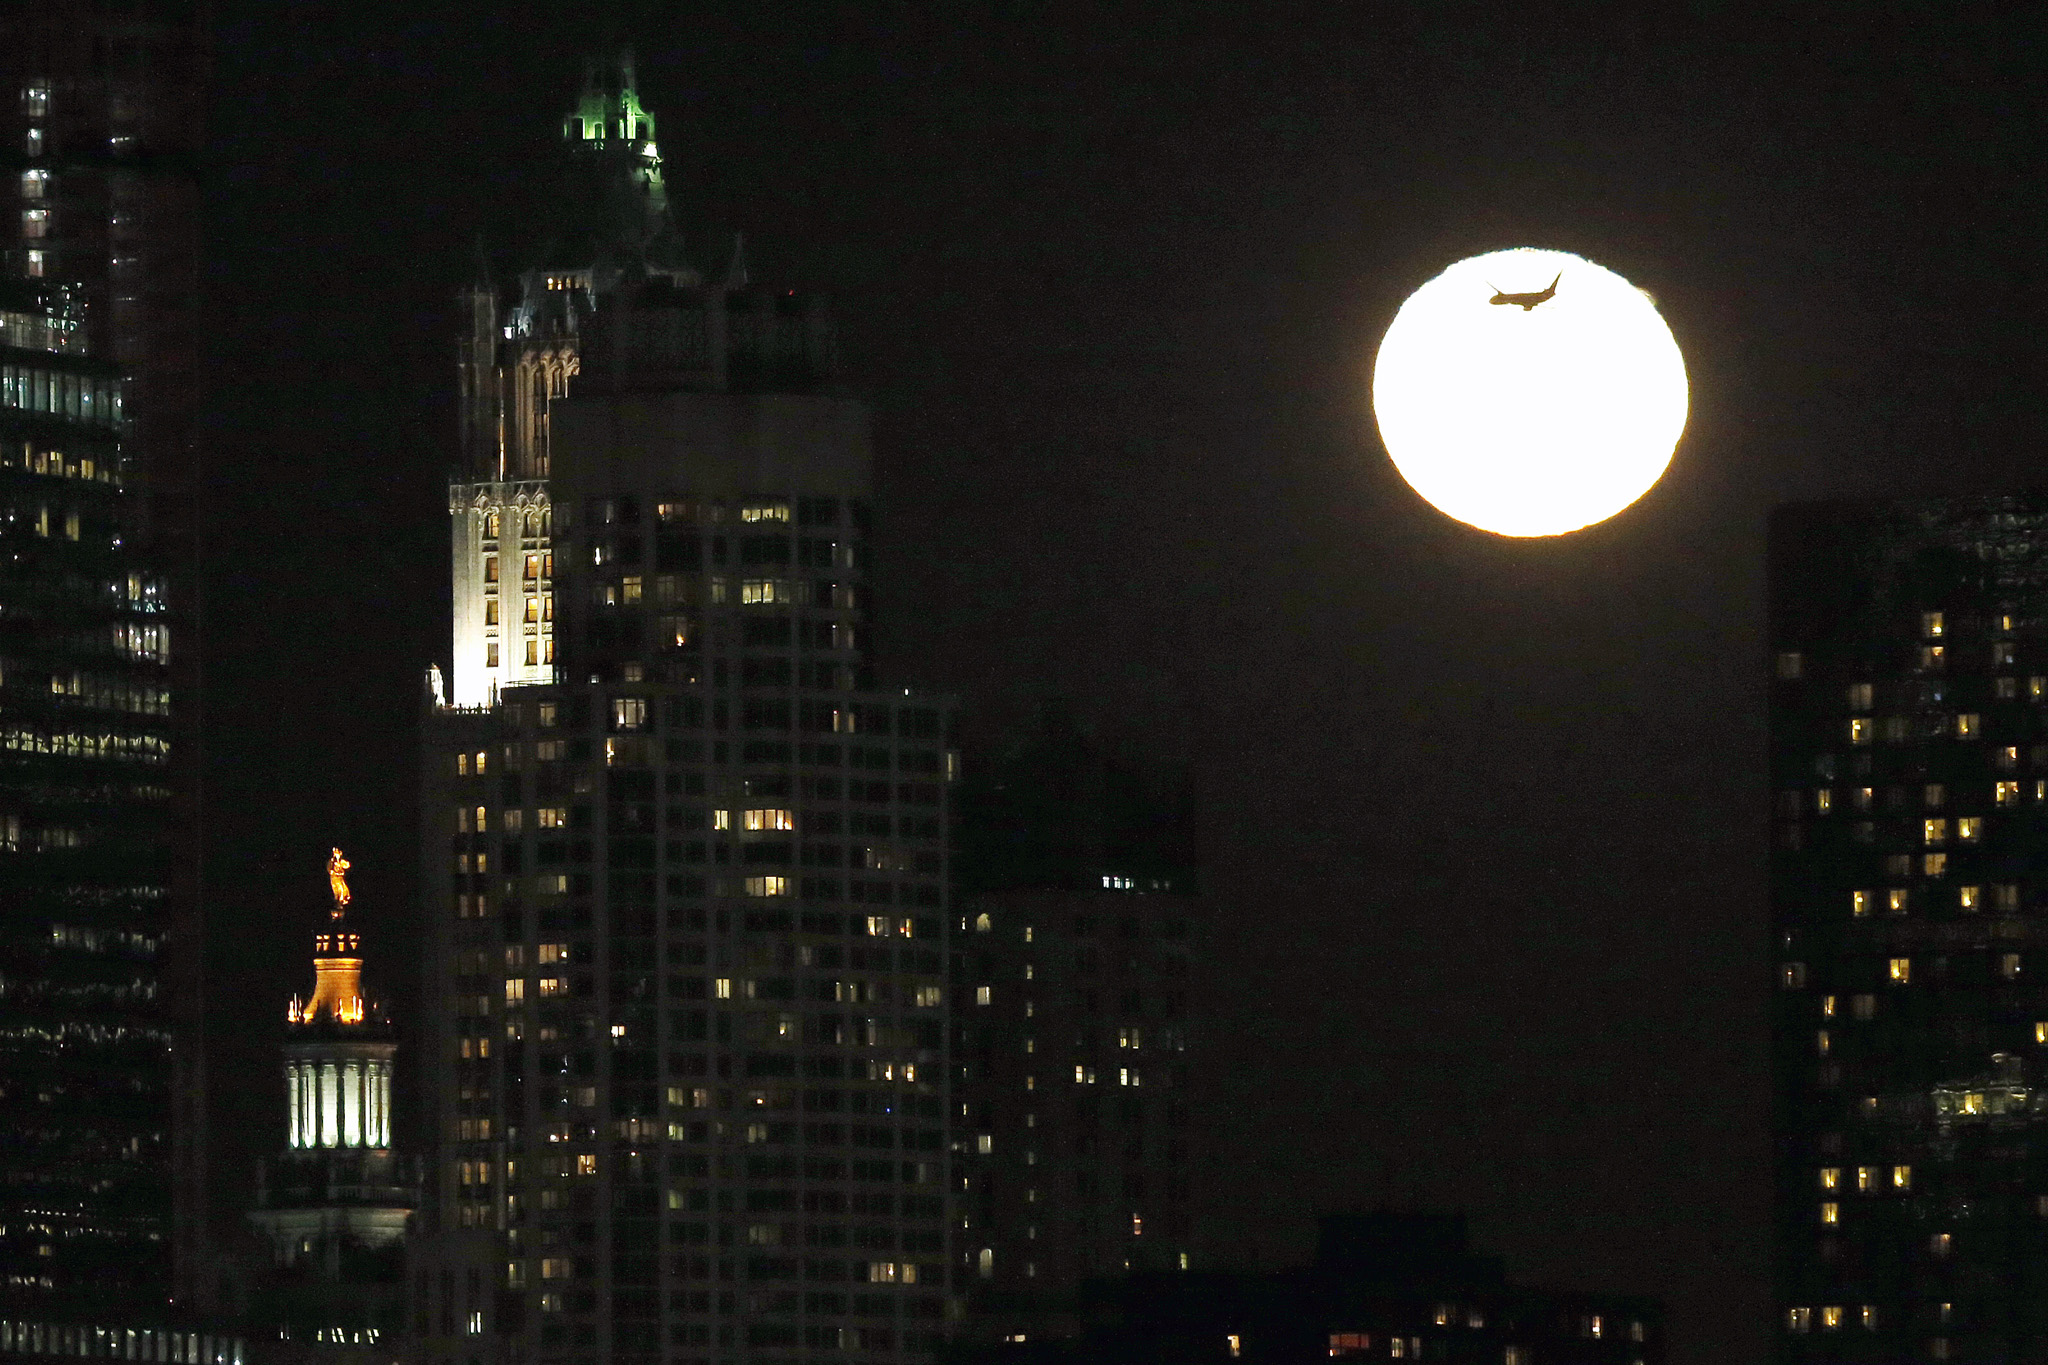 An airplane flies past the rising moon in its waning gibbous stage as viewed from Jersey City, N.J., Thursday, Feb. 5, 2015. The statue known as Civic Fame, bottom left, which stands atop of the Manhattan Municipal Building in New York, is also visible.